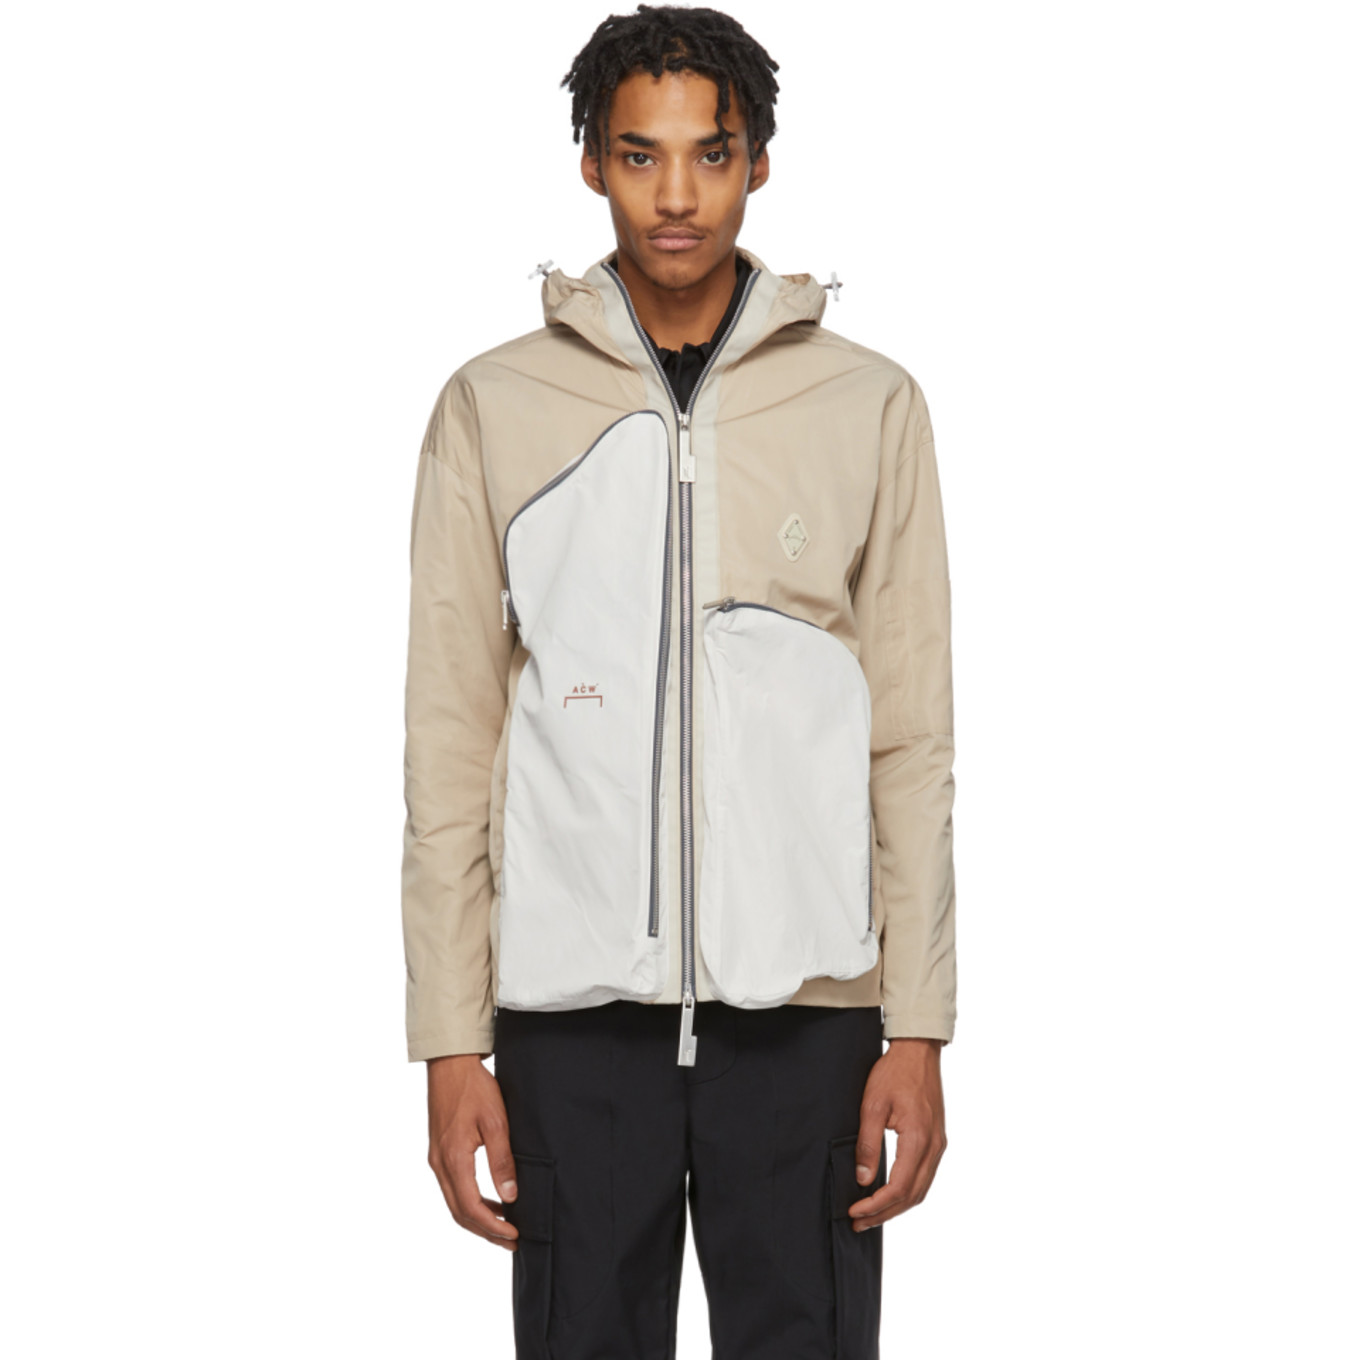 Beige Passage Jacket by A Cold Wall*